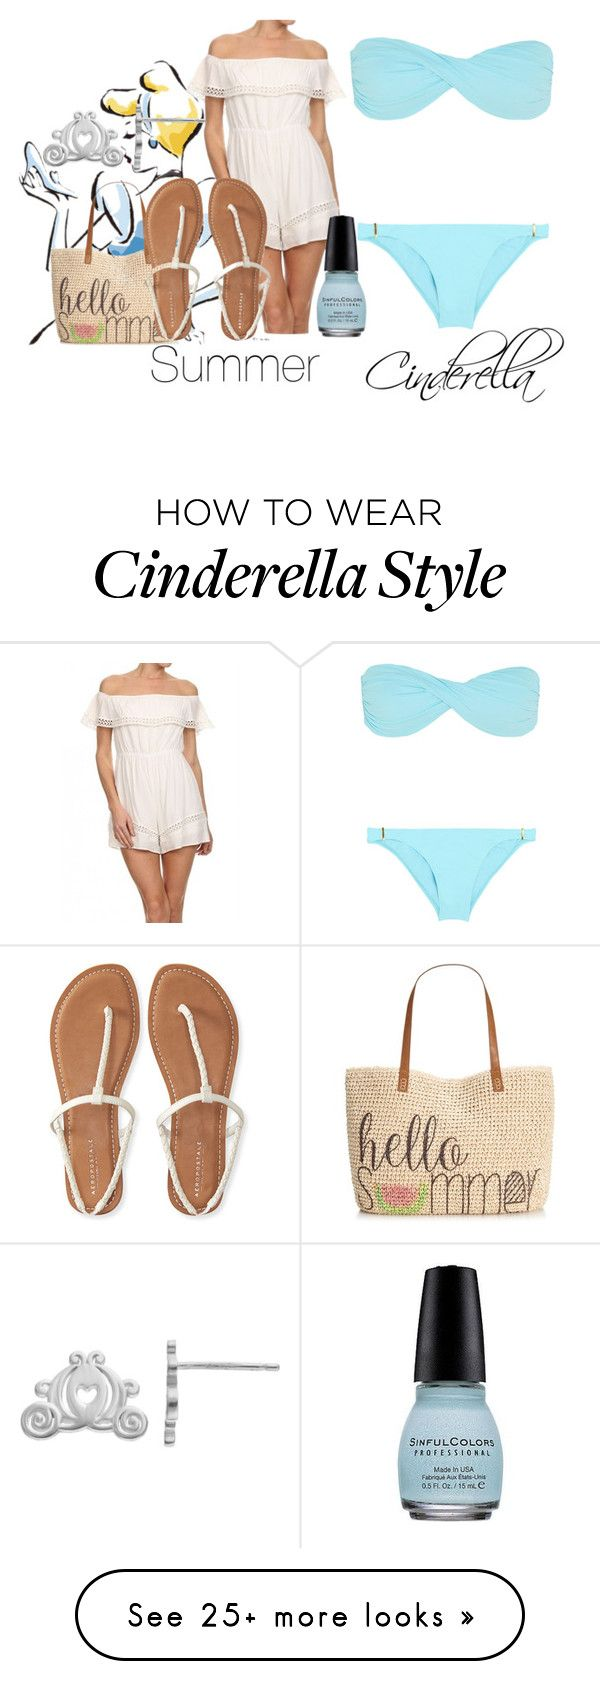 """Summer Cinderella"" by jakebake on Polyvore featuring Melissa Odabash, Disney, Style & Co. and Aéropostale"